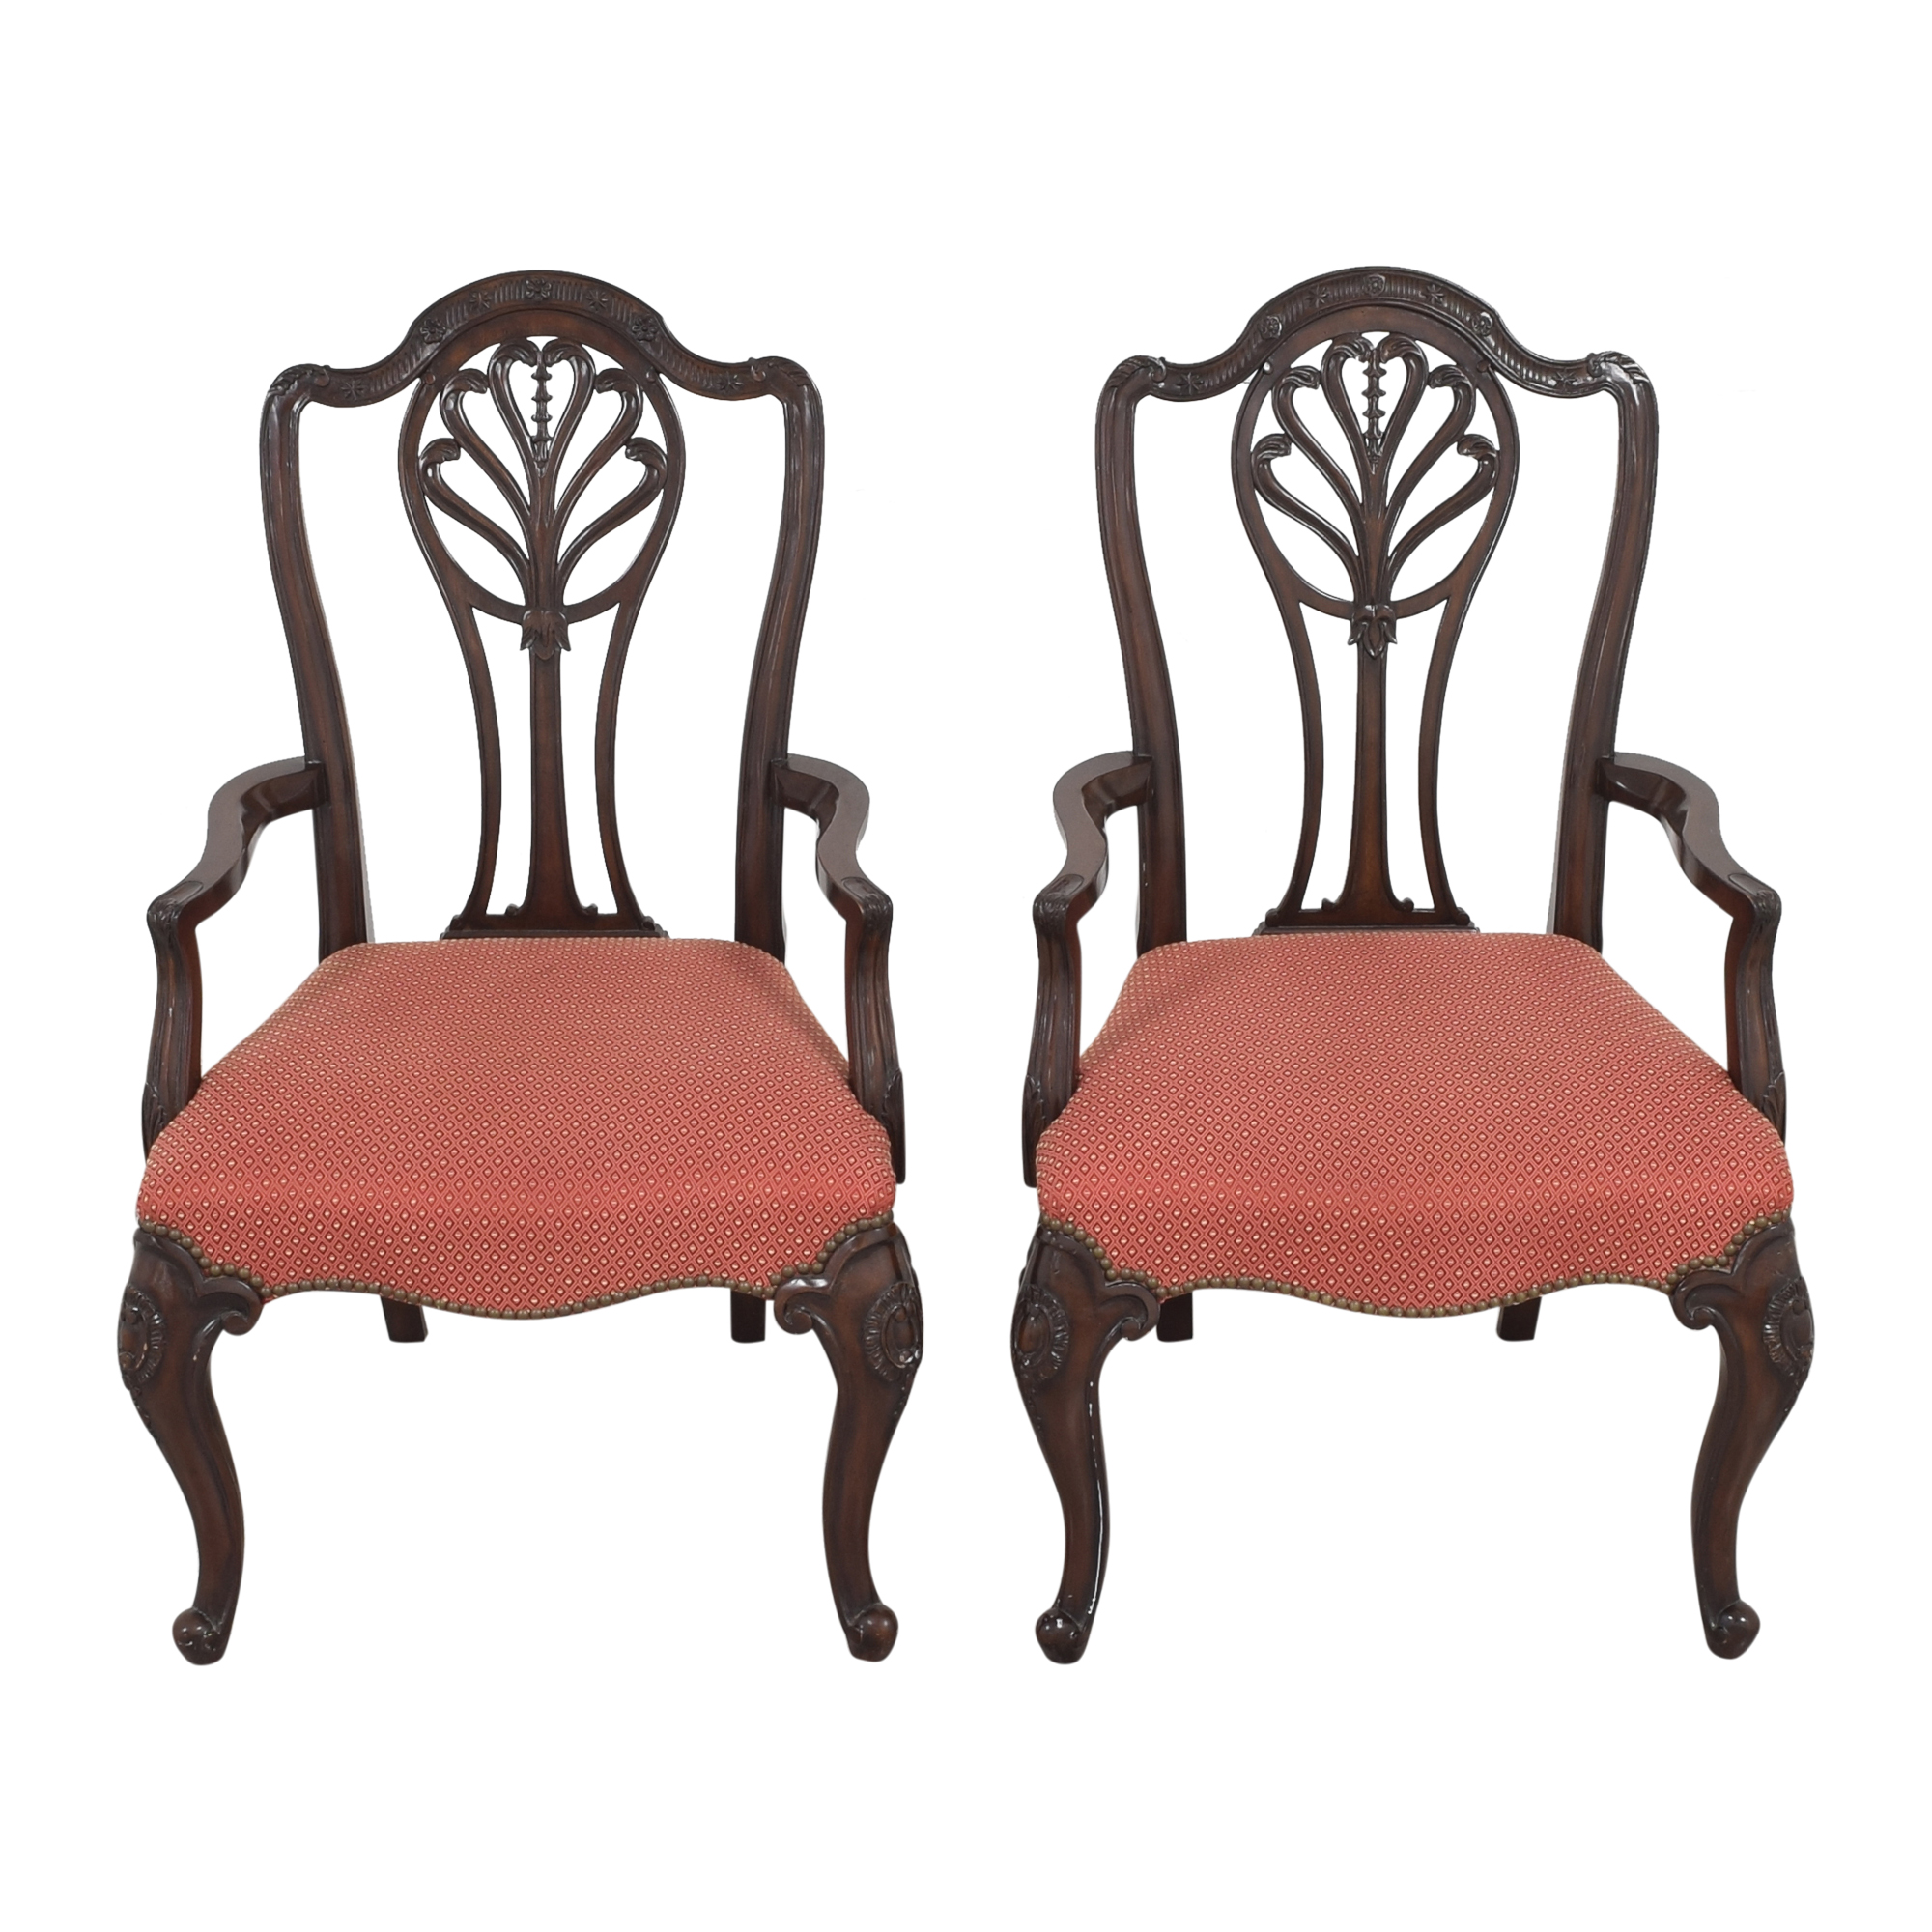 Drexel Heritage Drexel Heritage Upholstered Dining Arm Chairs price